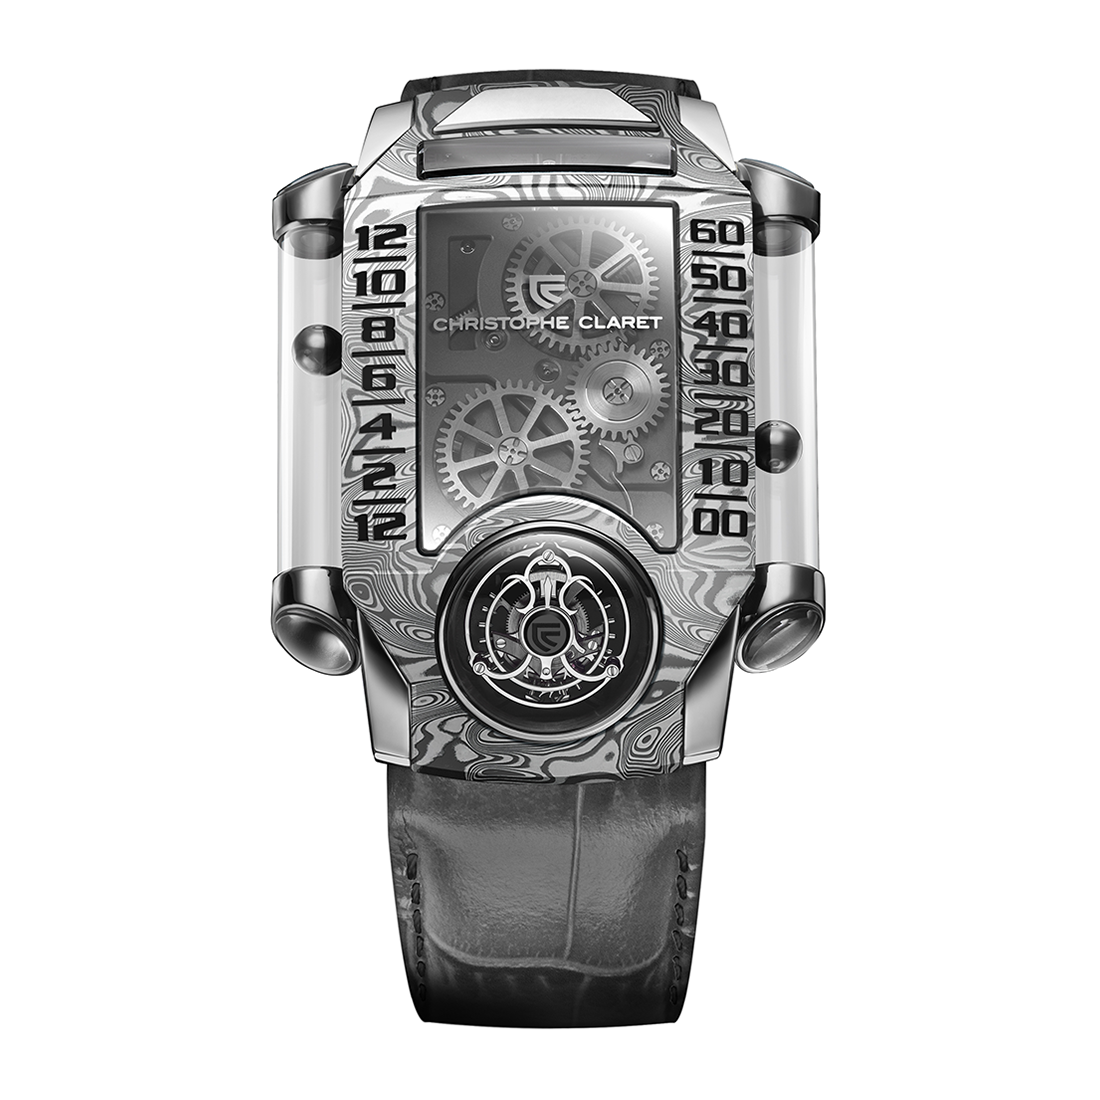 Christophe Claret X-Trem-1 White Gold & Damascus Steel